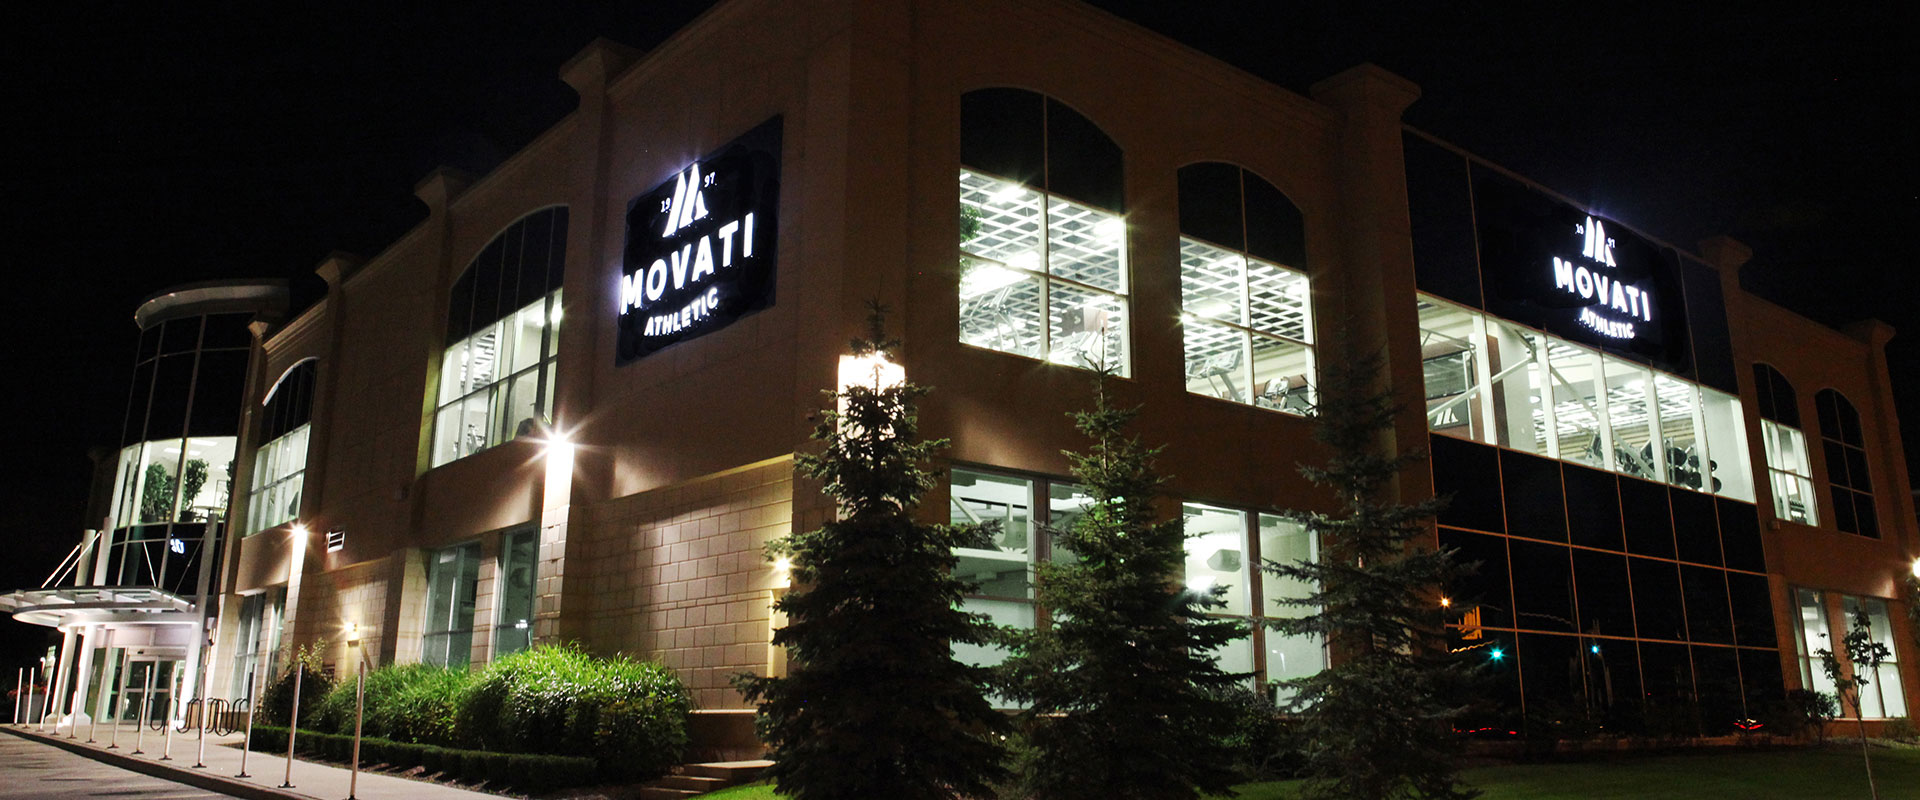 Movati Athletic Guelph - Exterior Night